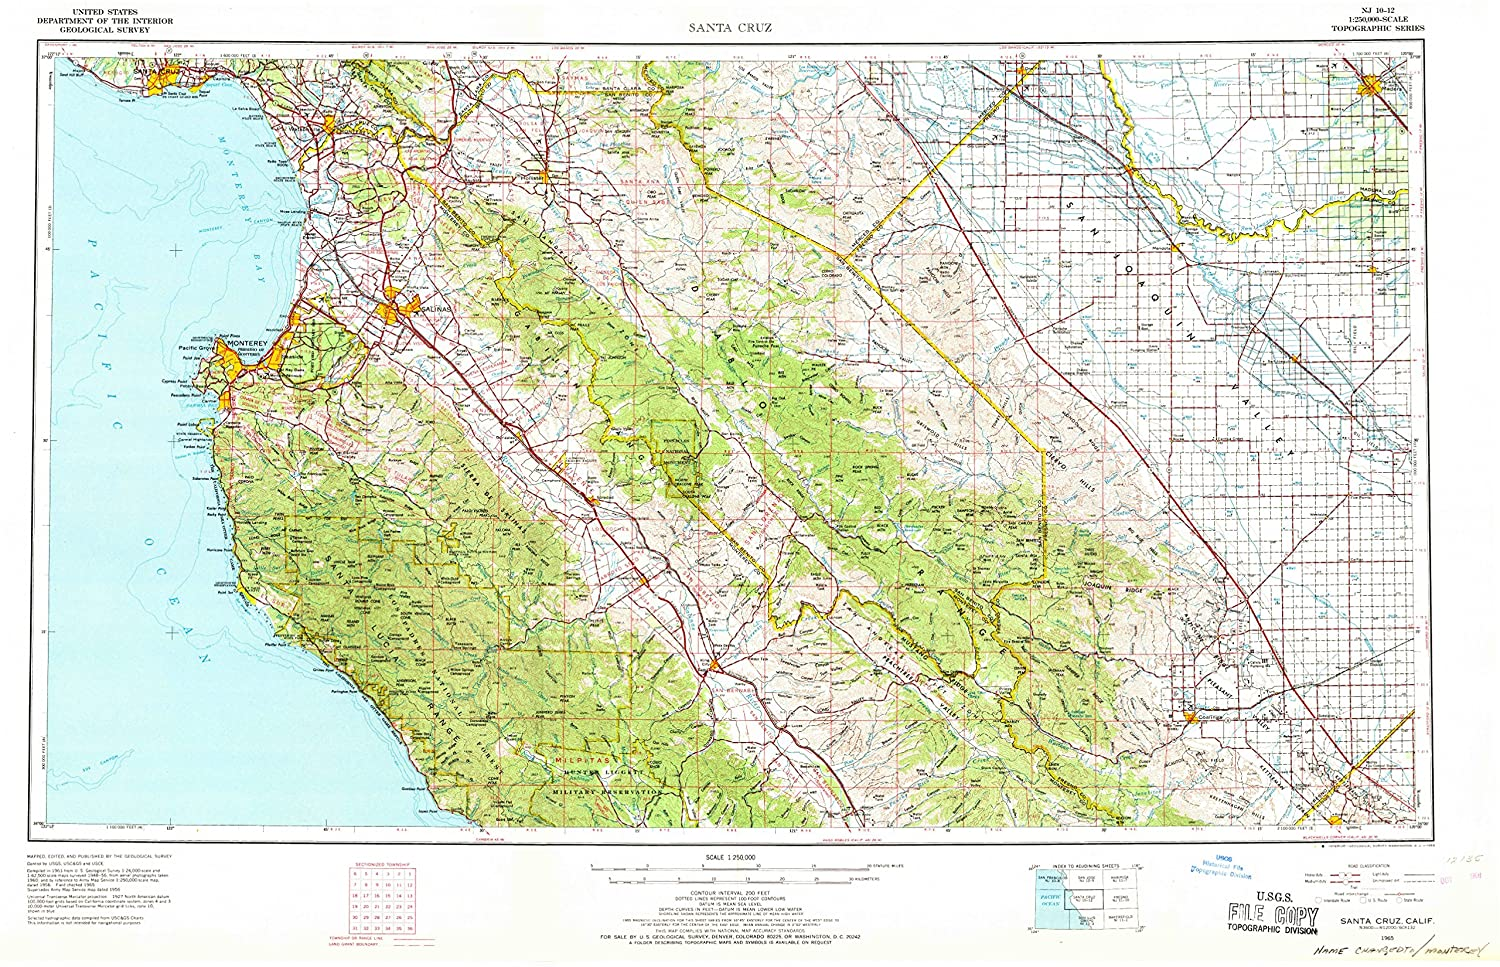 Santa Cruz California Map.Amazon Com Yellowmaps Santa Cruz Ca Topo Map 1 250000 Scale 1 X